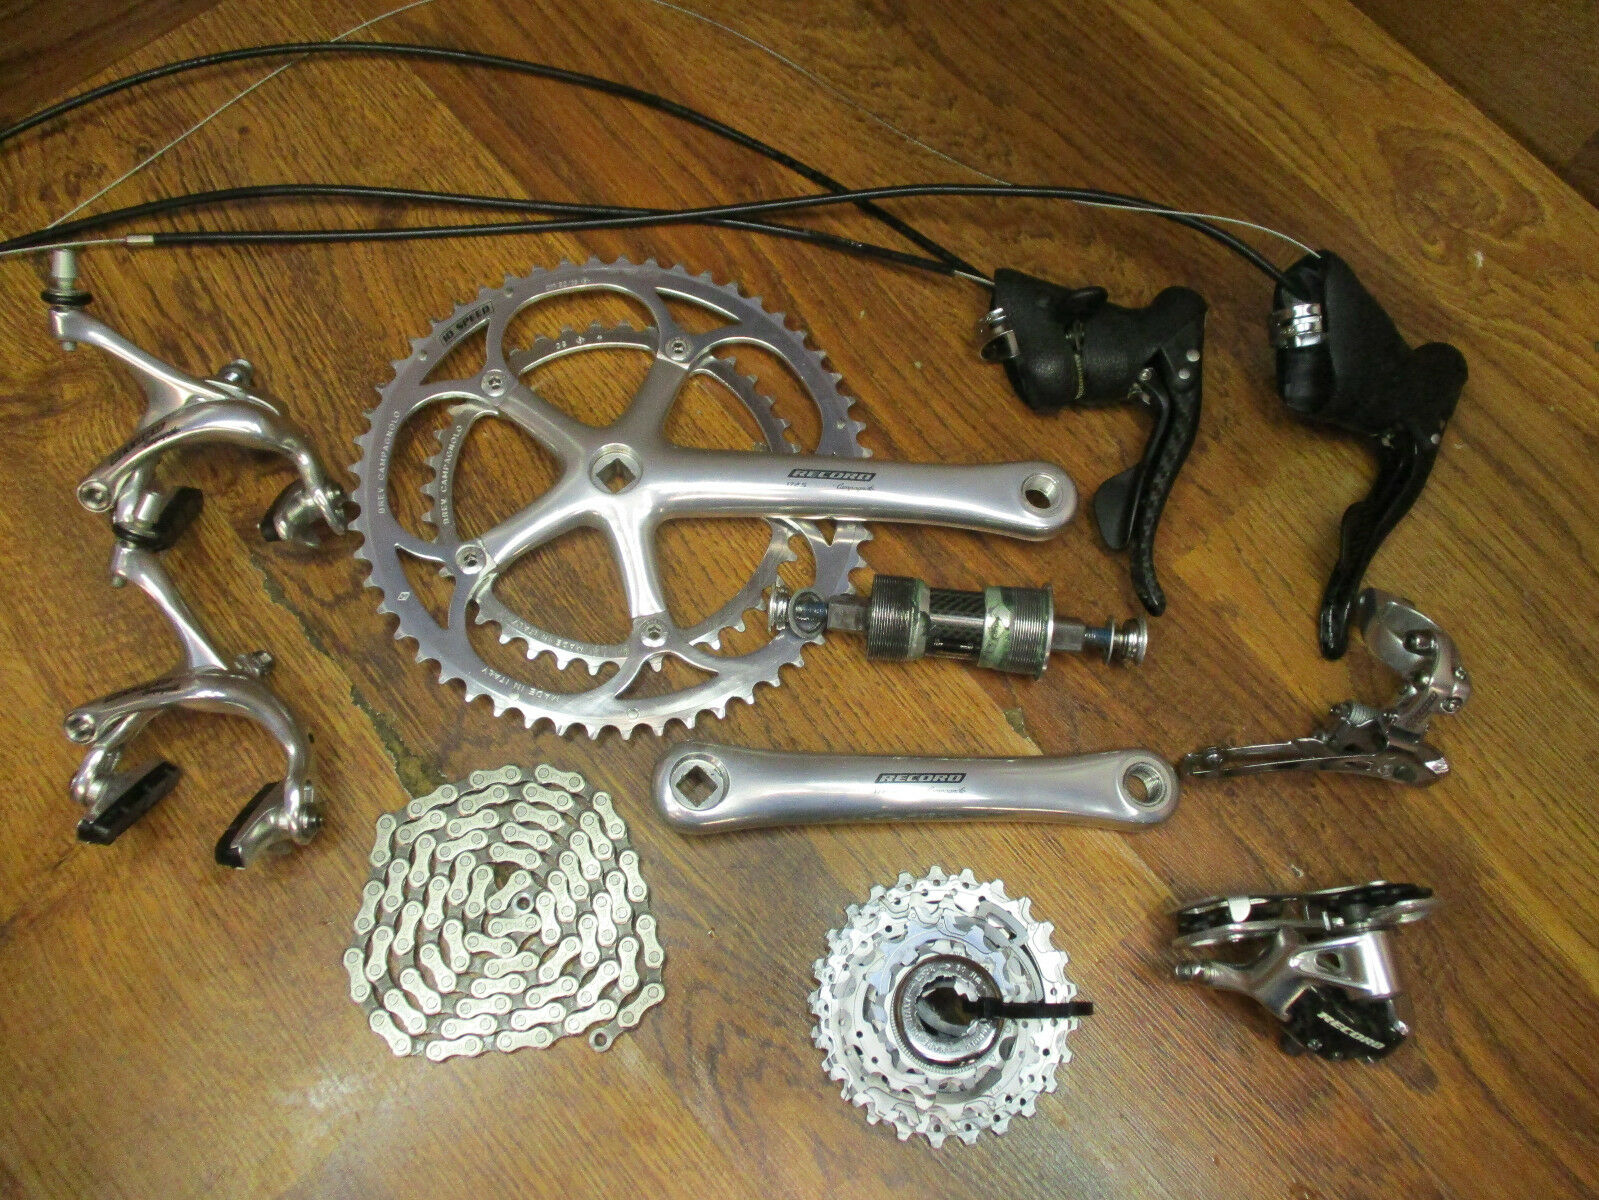 CAMPAGNOLO RECORD BB-SYSTEM CARBON 10 SPEED COMPLETE GROUP BUILD KIT GRUPPO